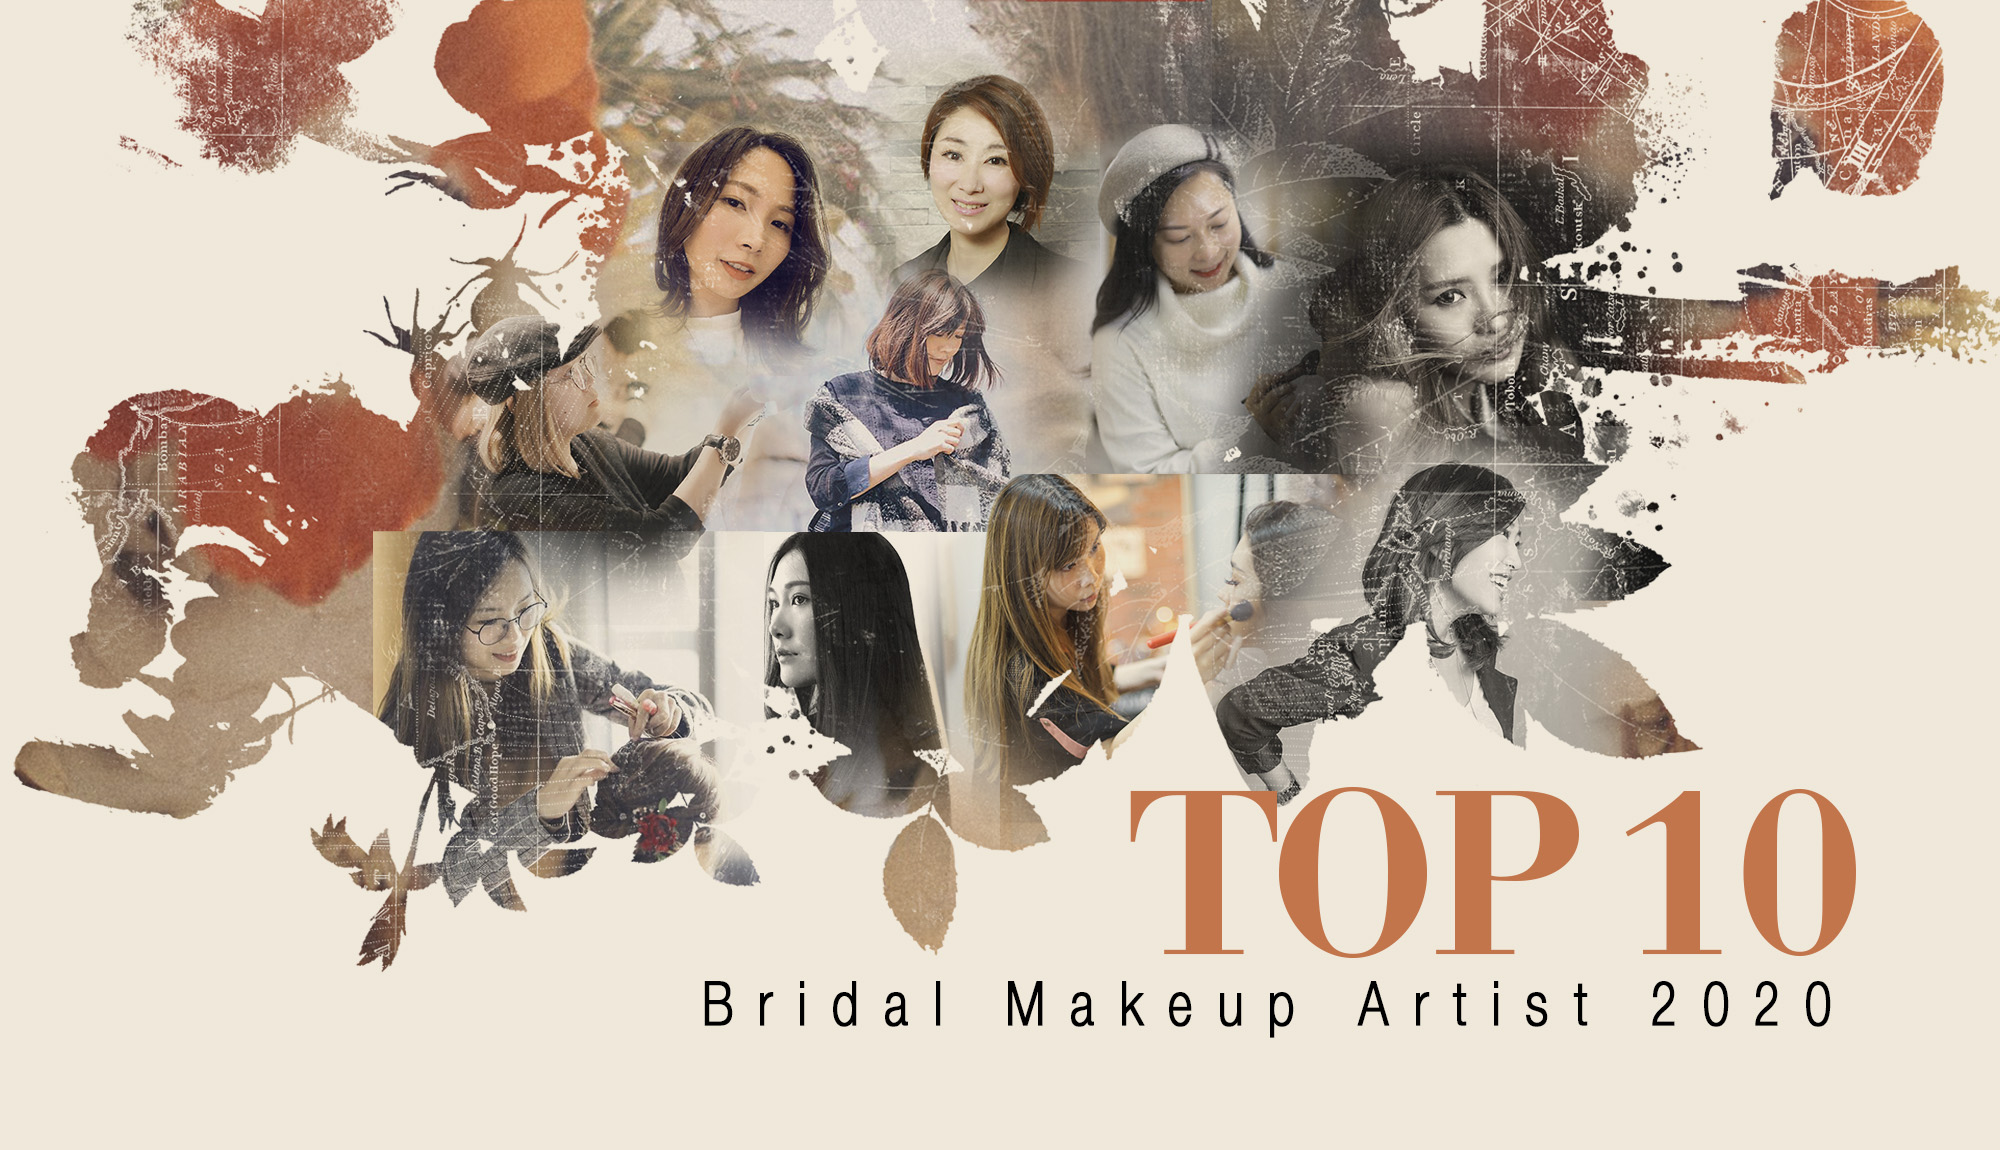 top10mua_allweb_word